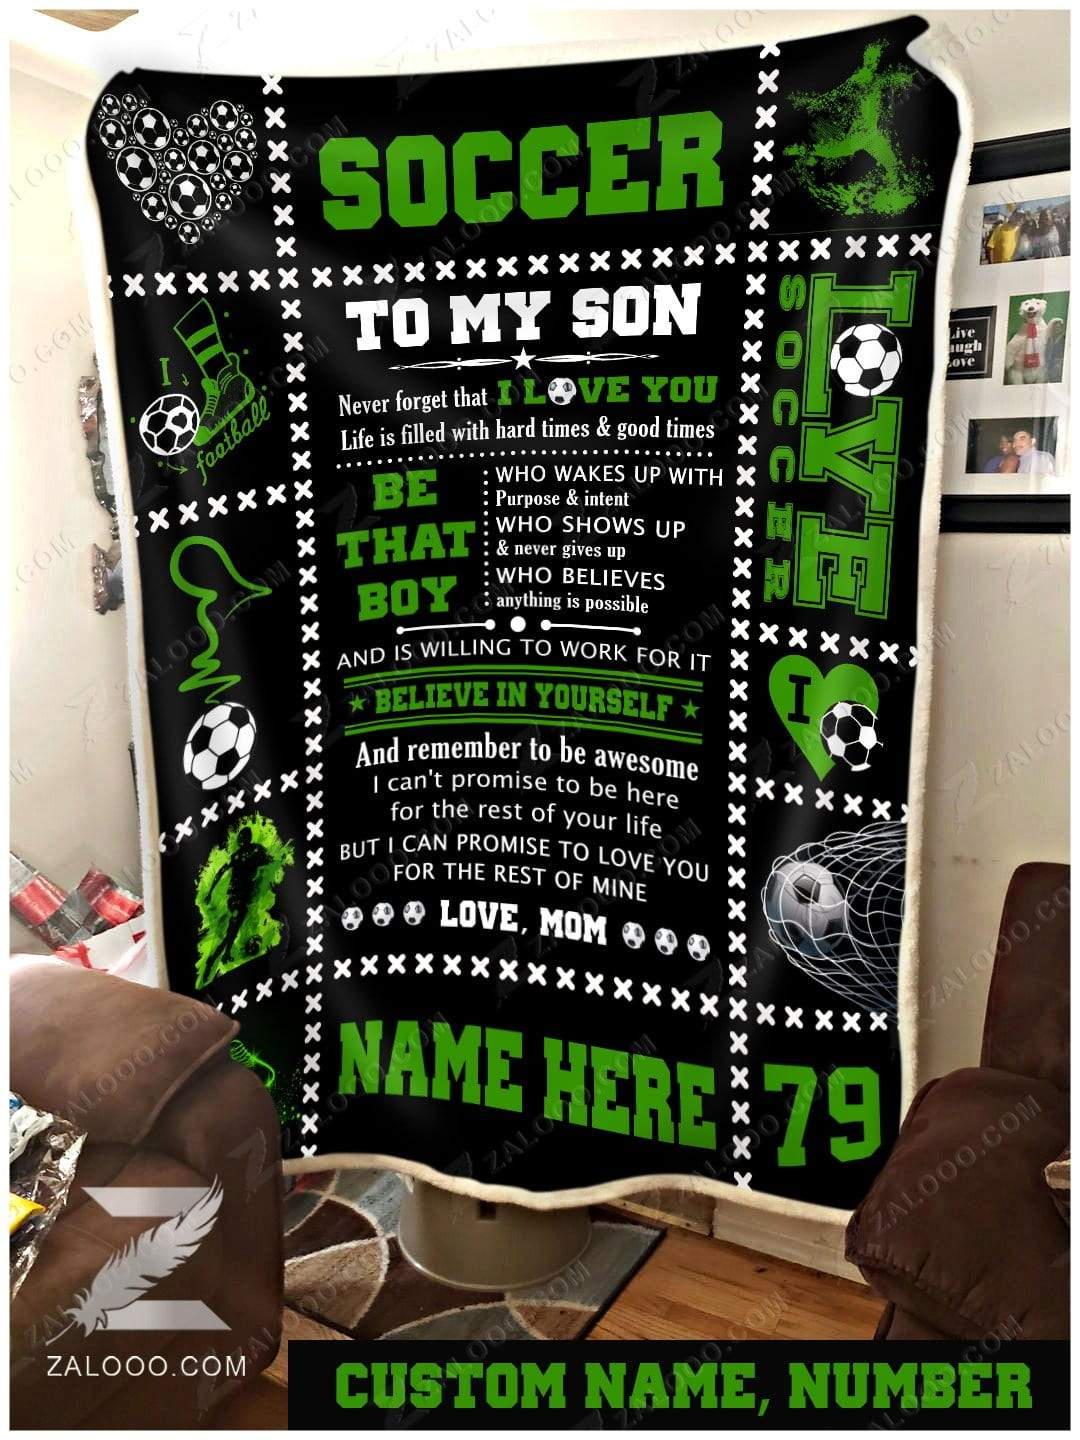 Soccer - To my son - Be that boy Mom - 1